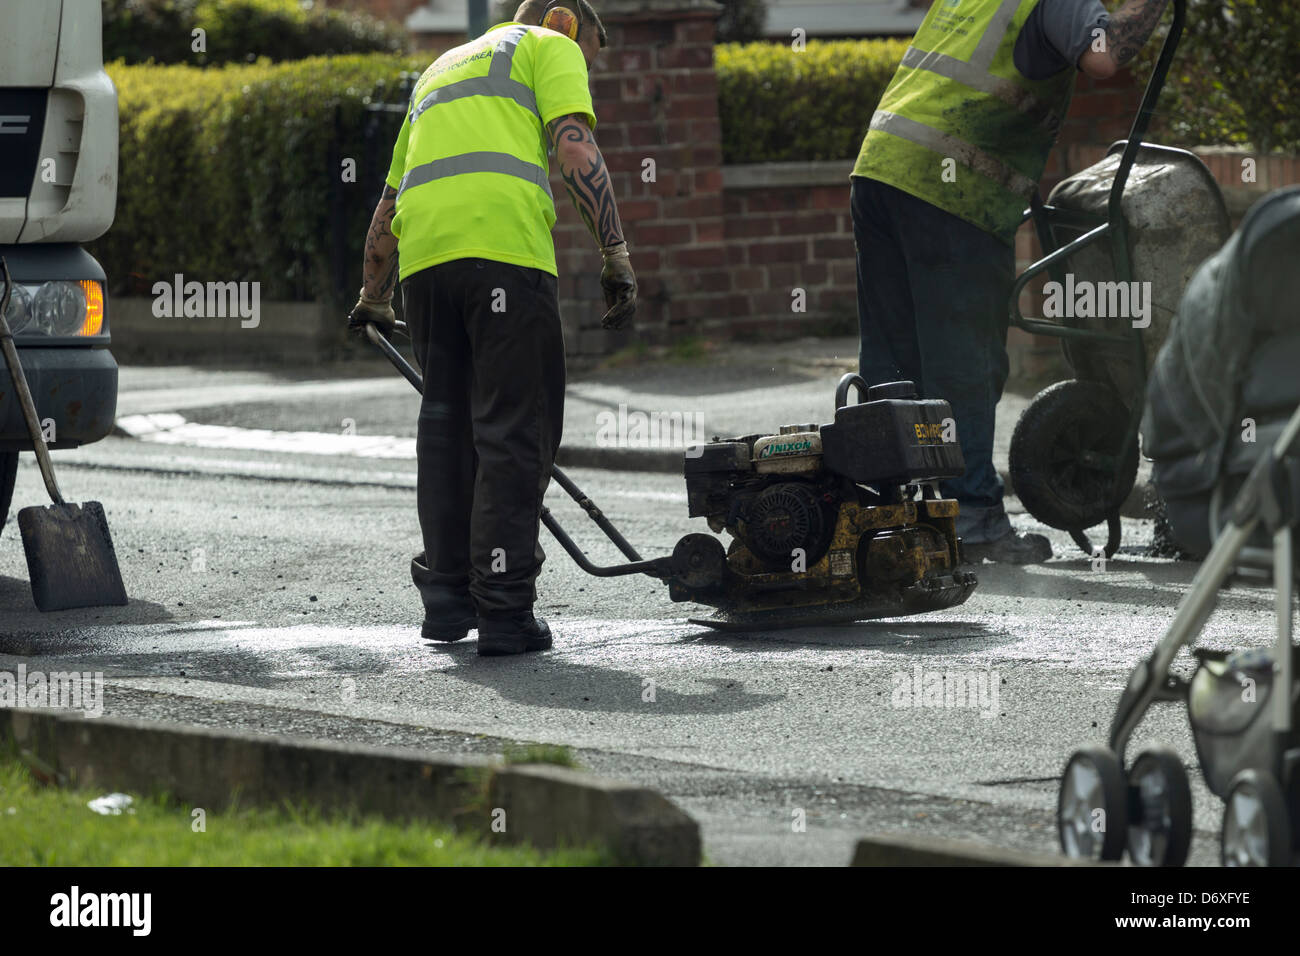 Council workers repairing potholes - Stock Image